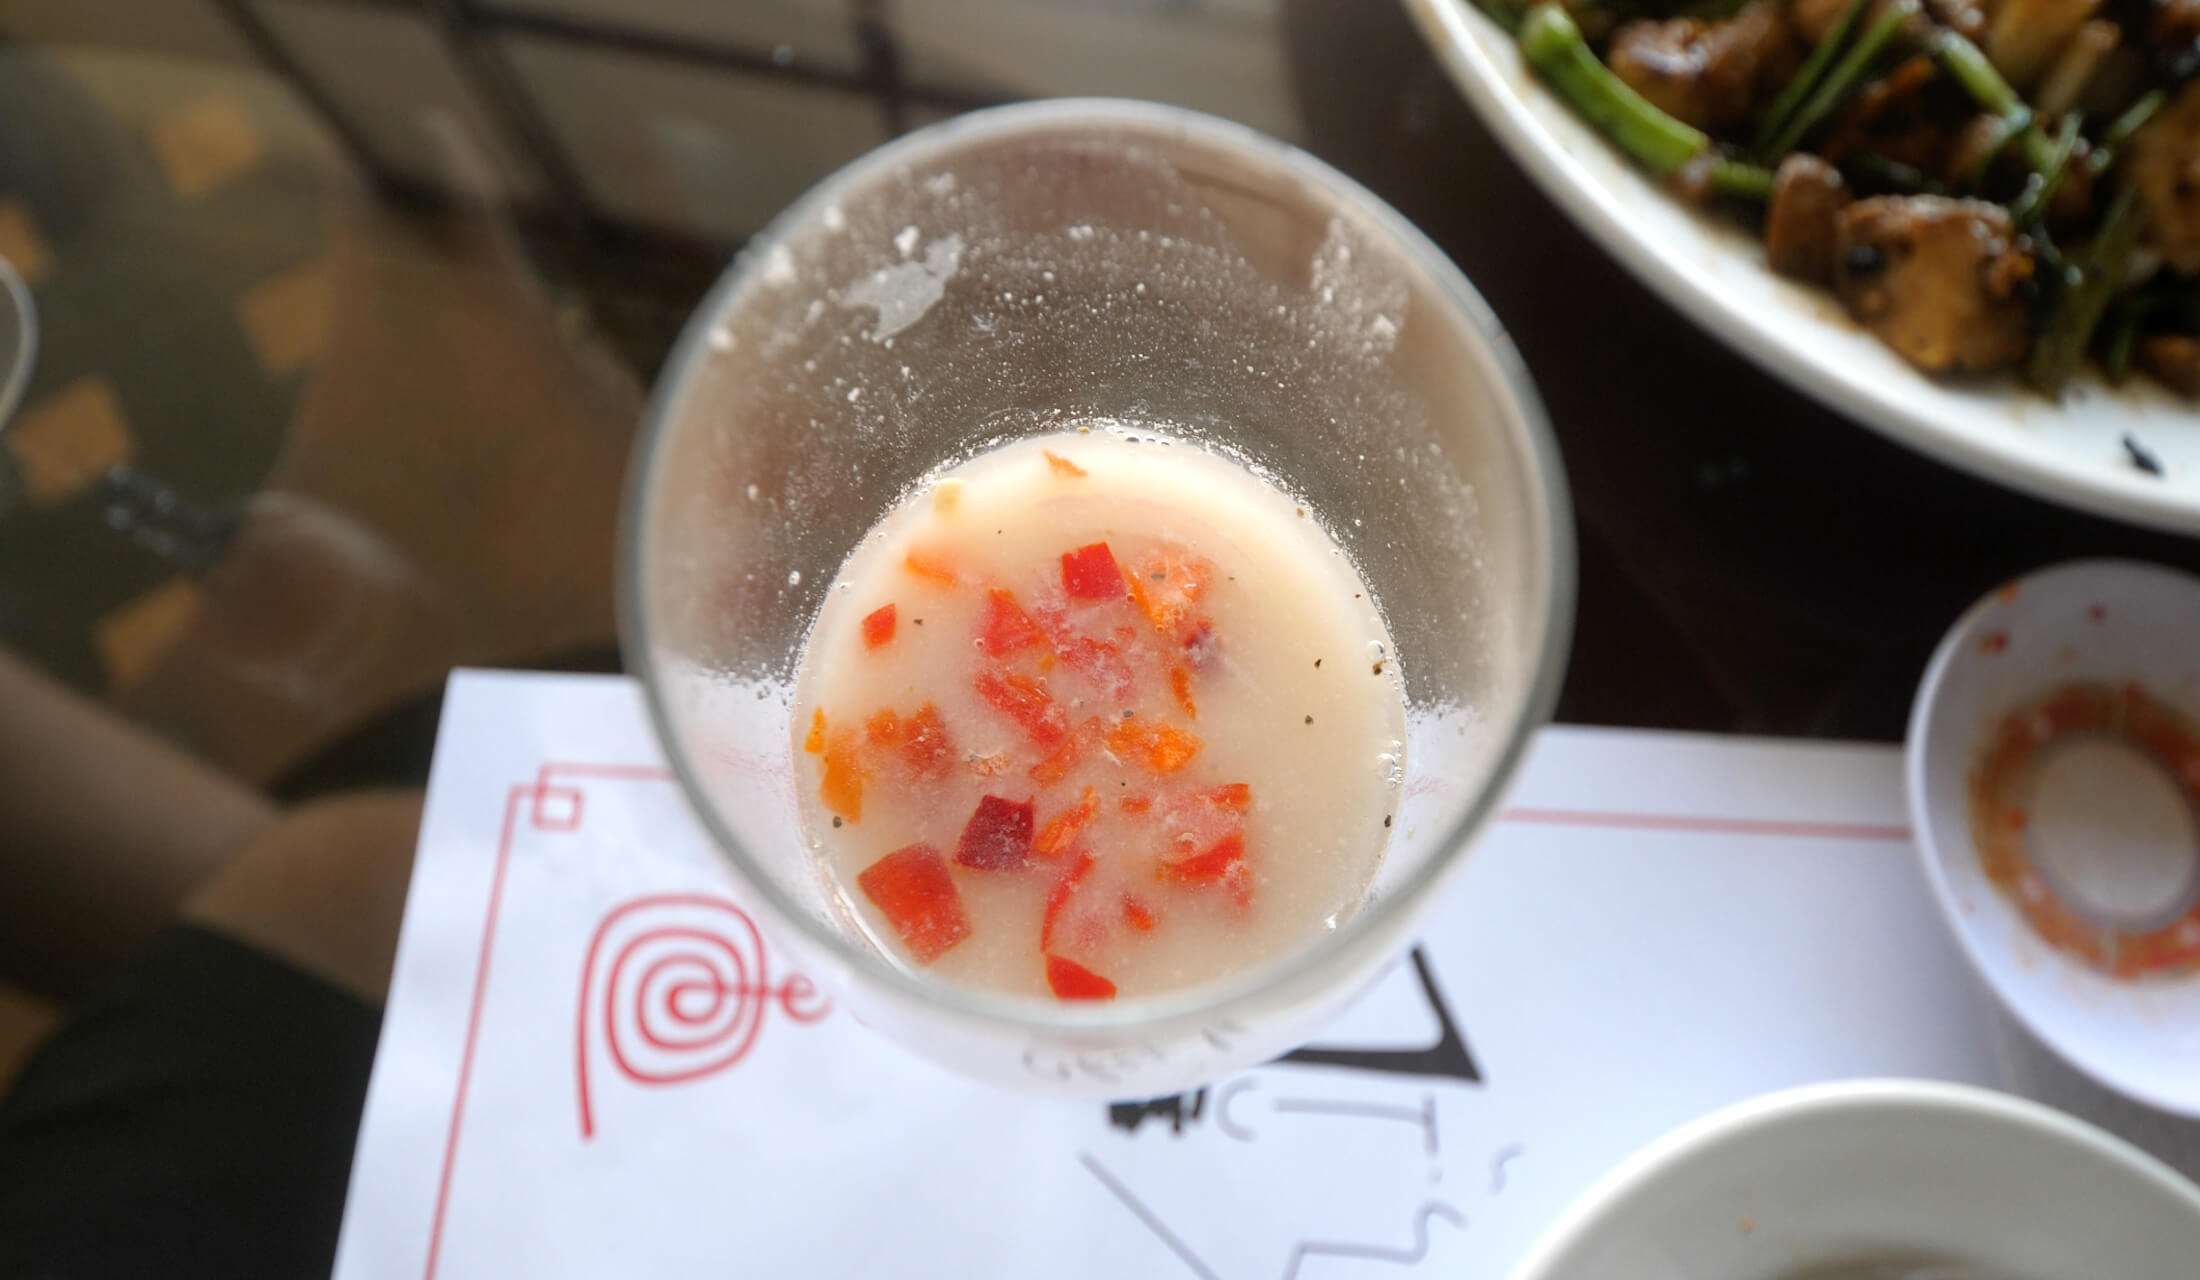 Hey local favorite, this is tigers milk, something to sip on after you are finished with your ceviche